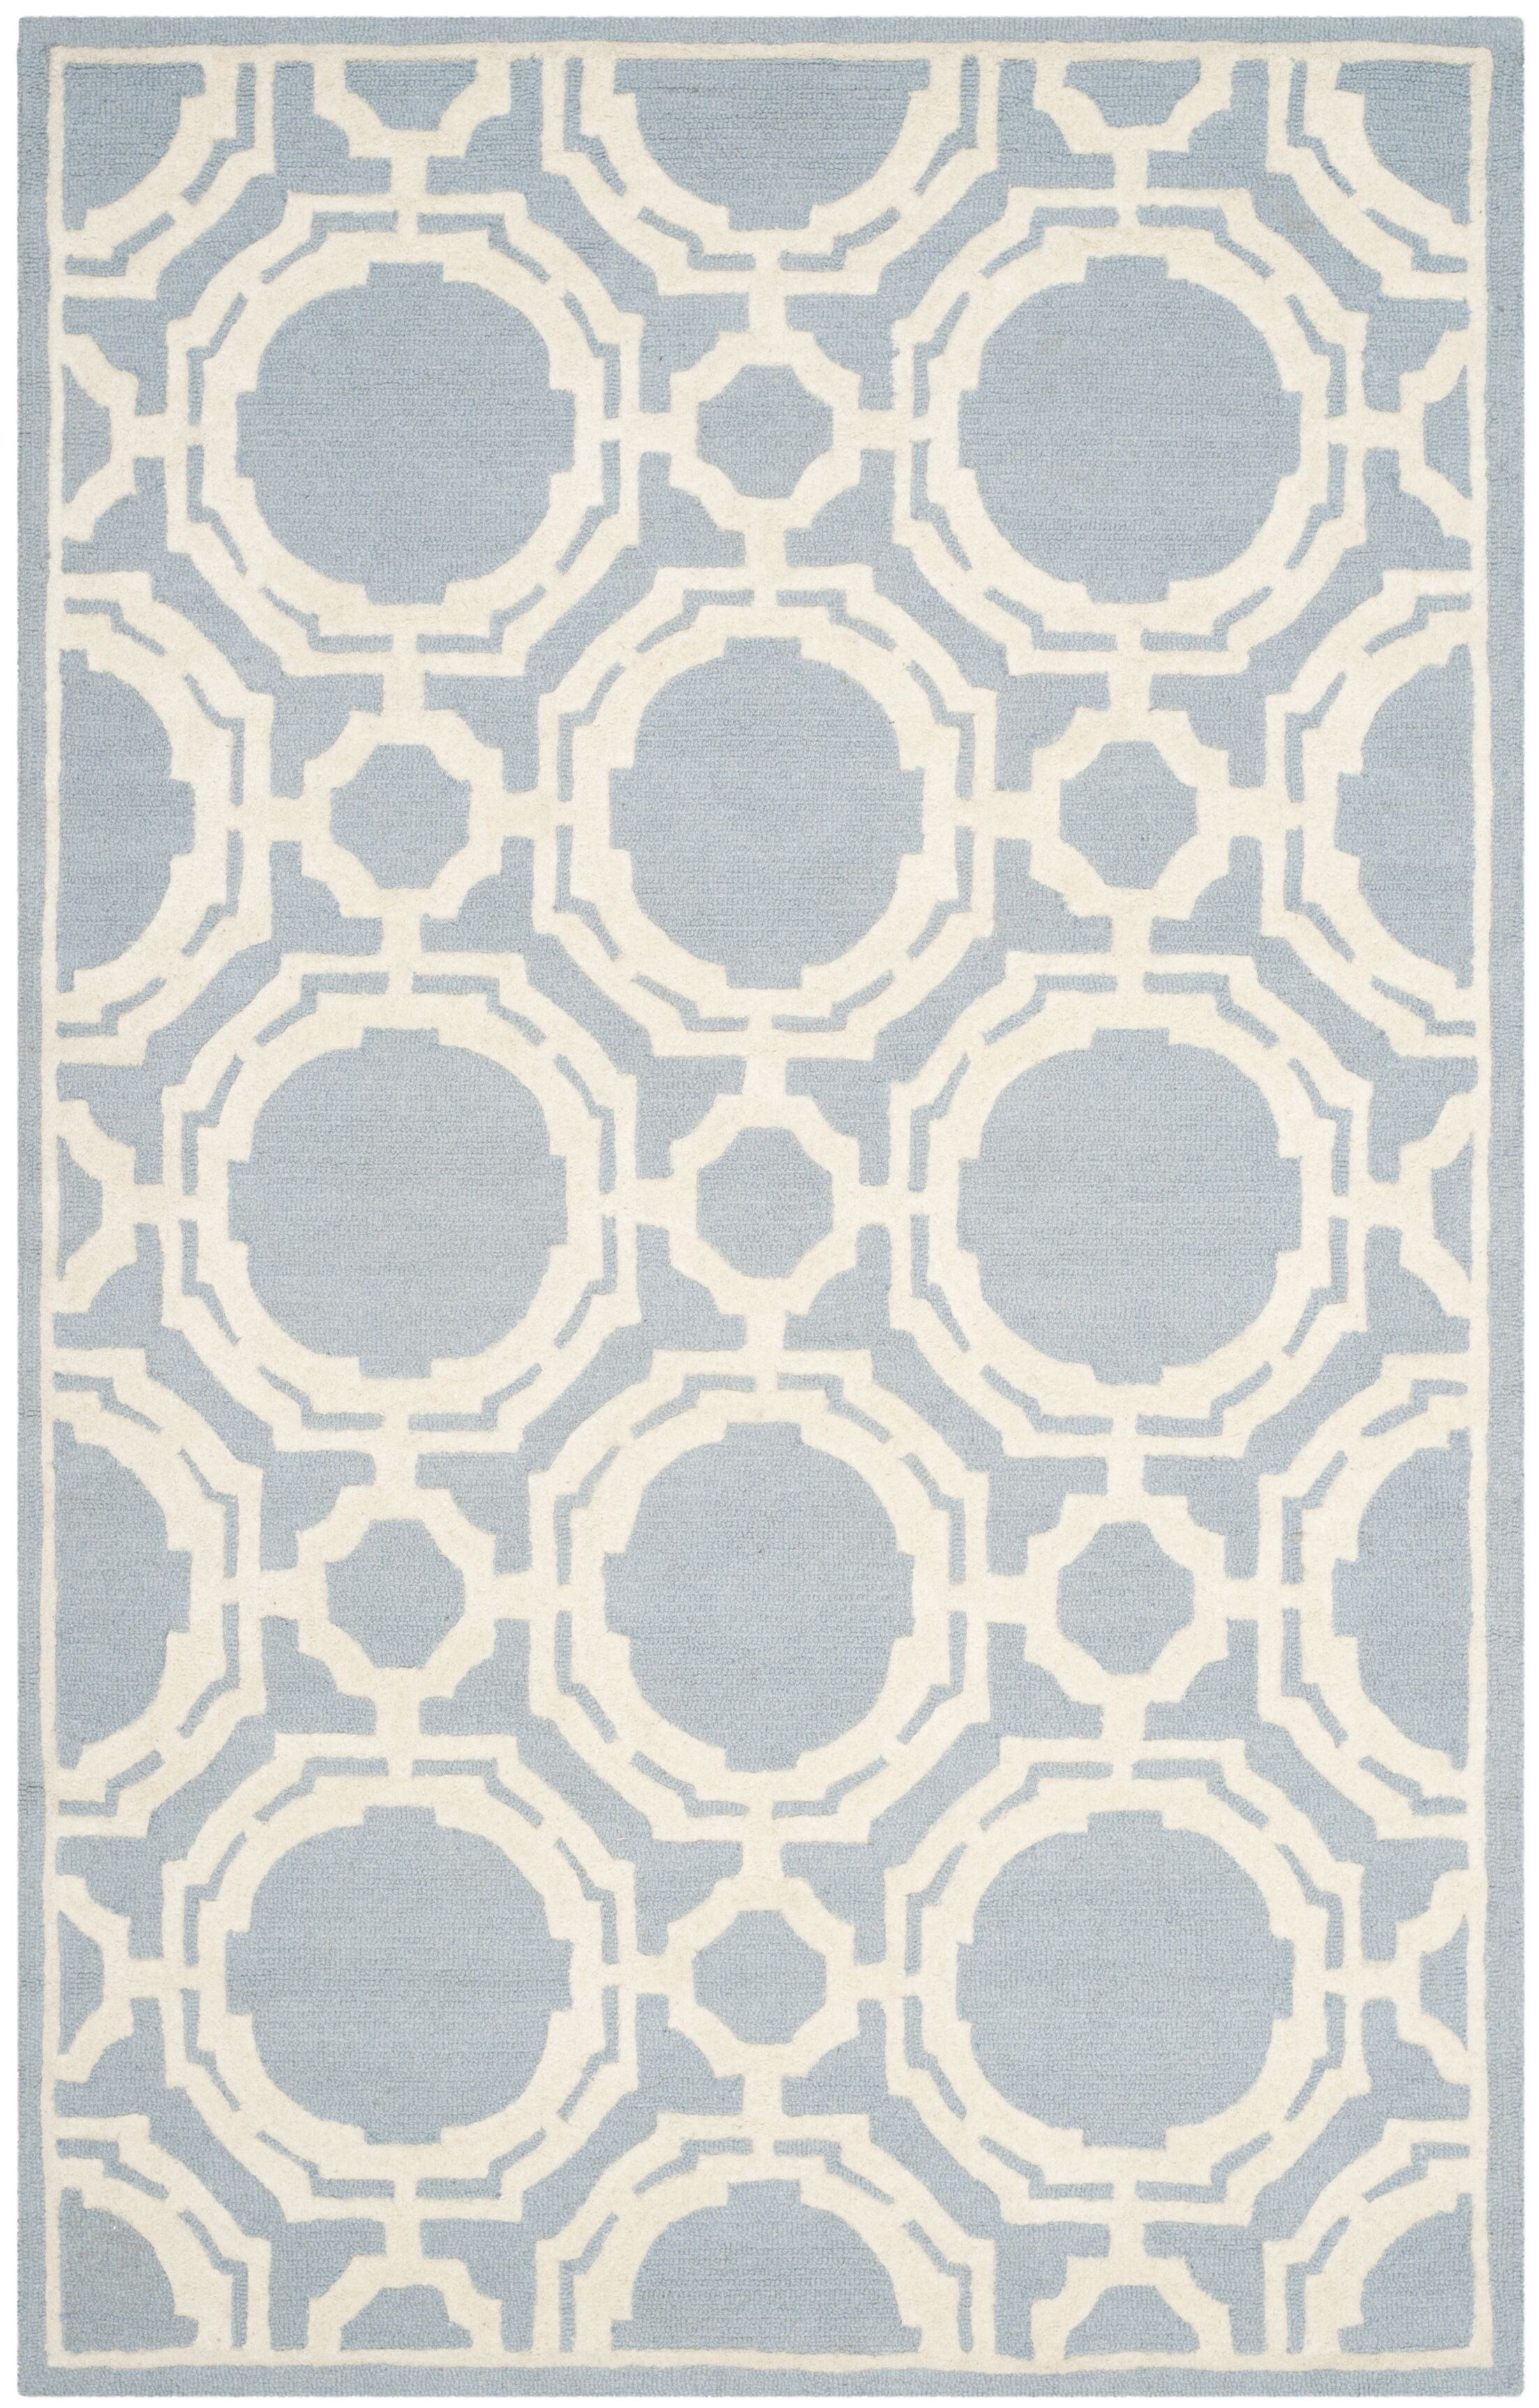 Blakemore Hand-Tufted Blue/Ivory Area Rug Rug Size: Rectangle 4' x 6'